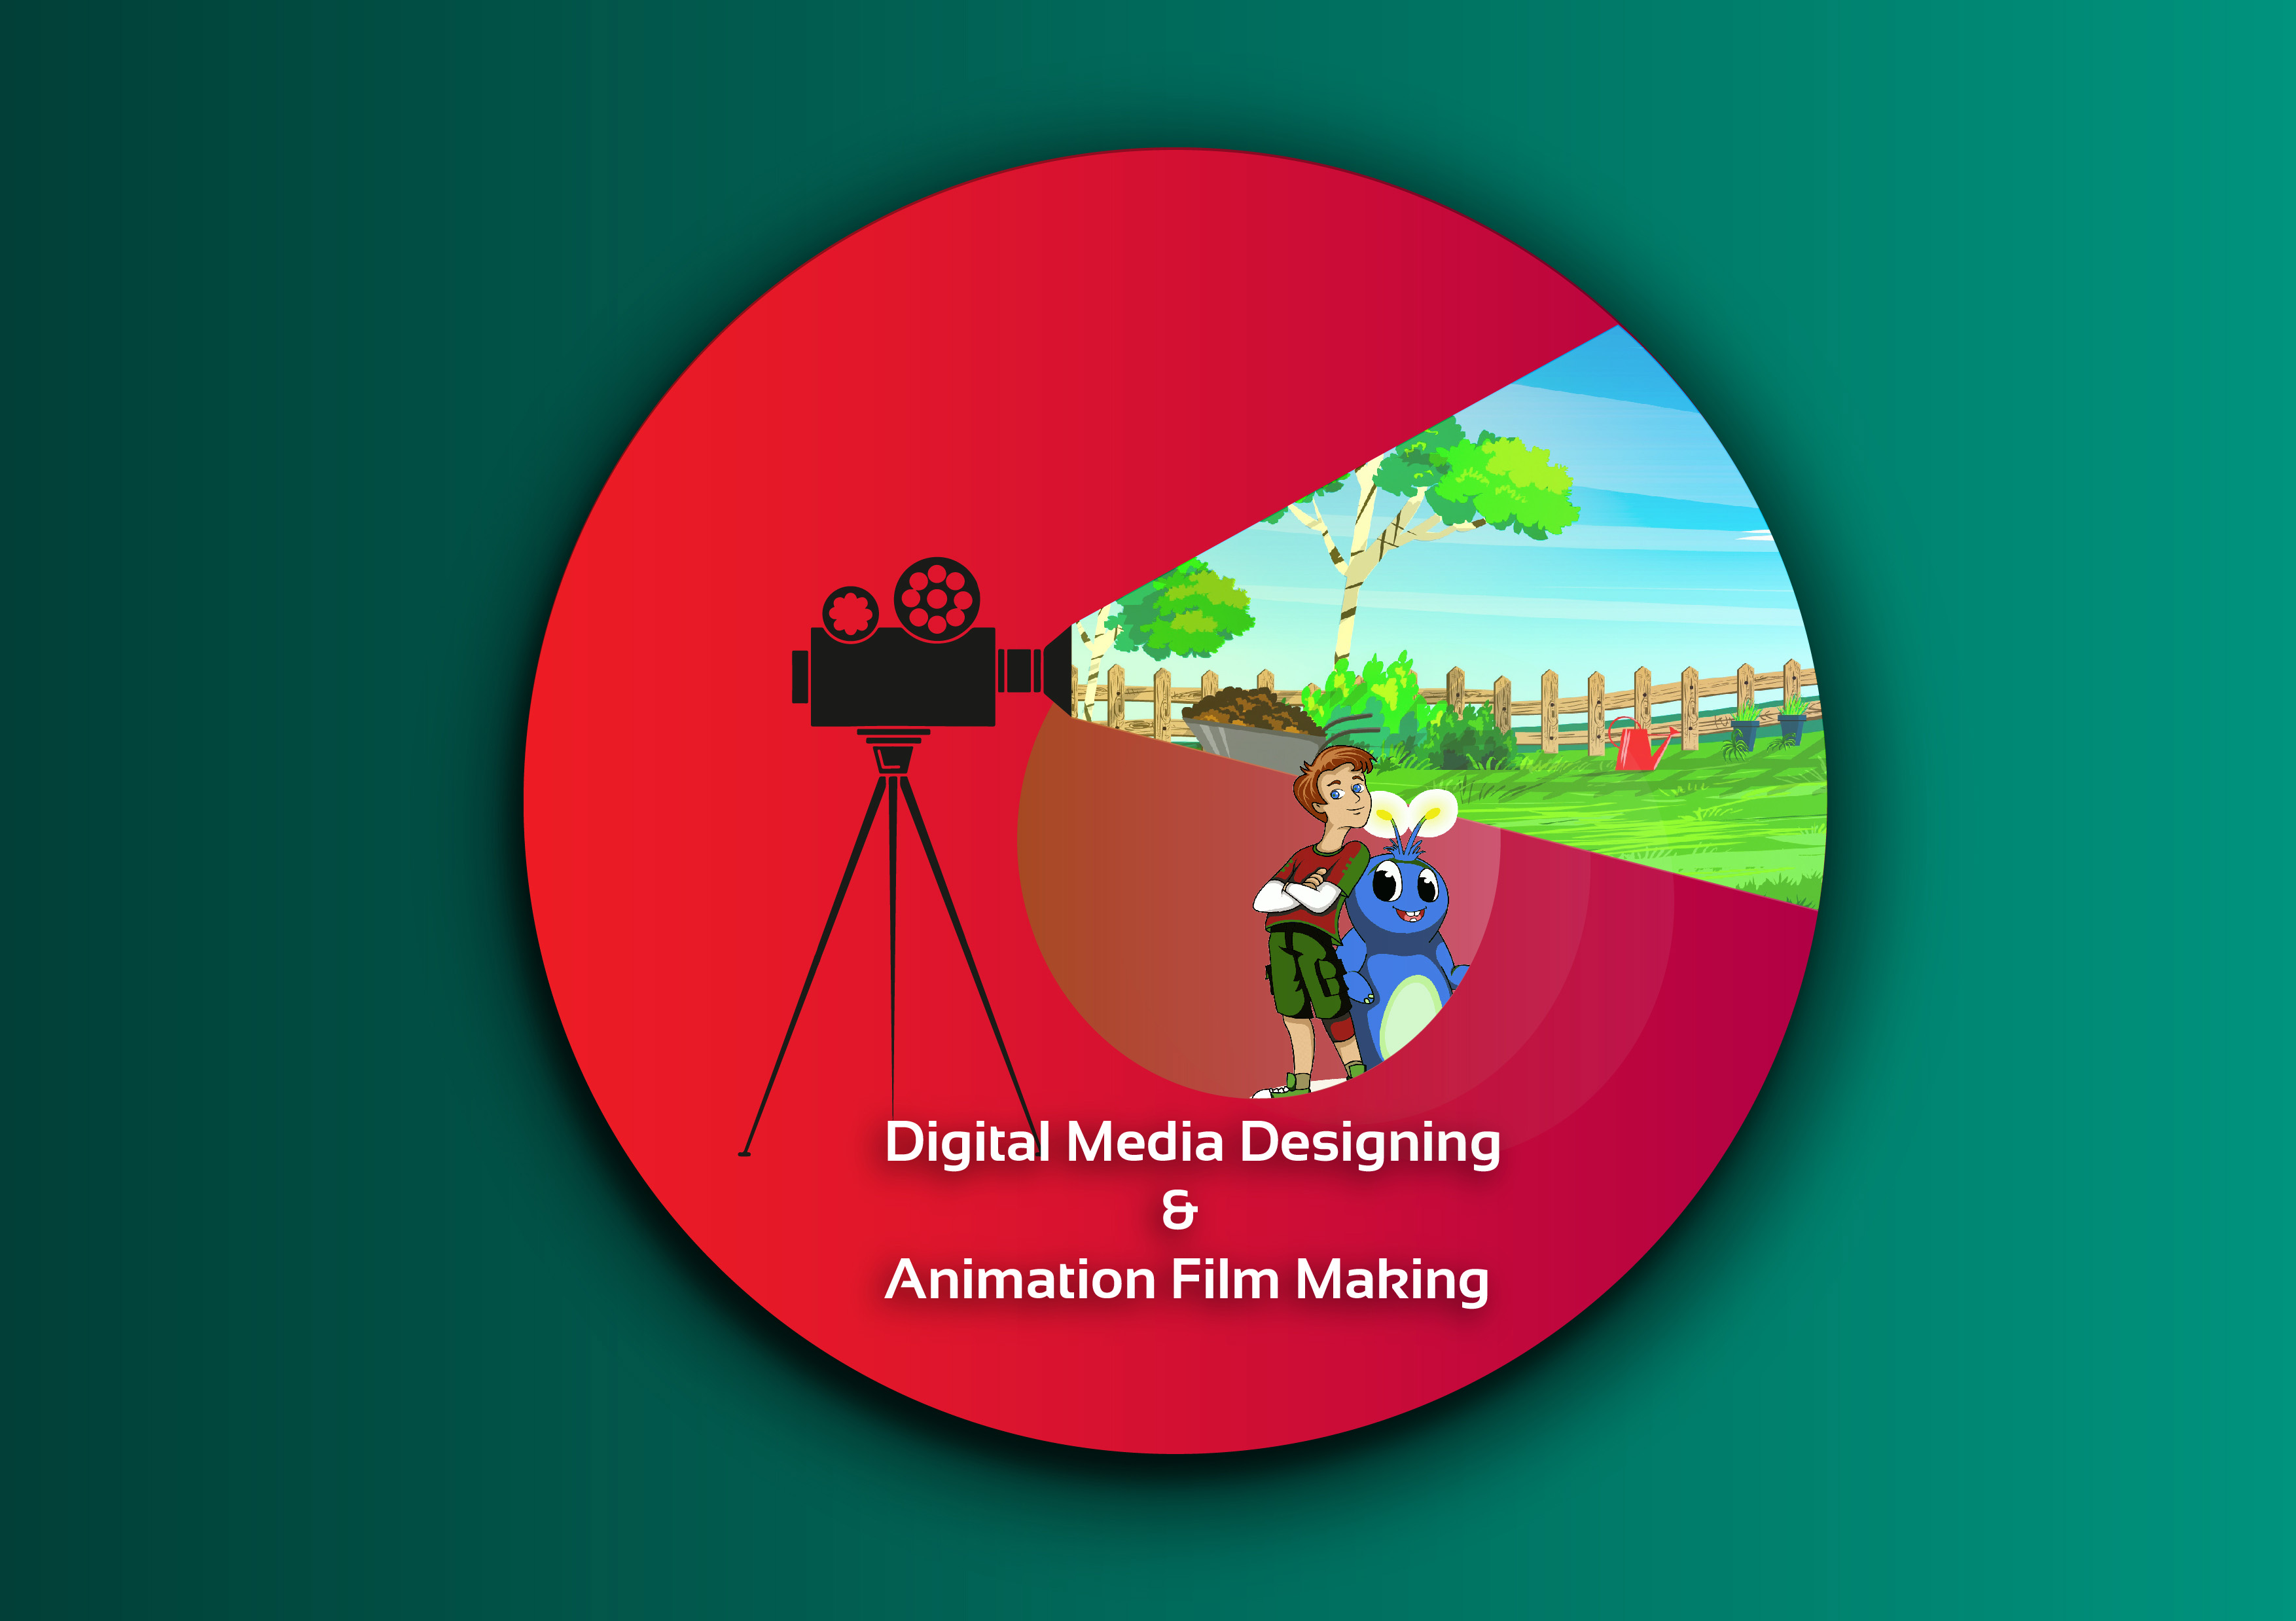 Advanced Diploma in Digital Media Designing and Animation Film Making